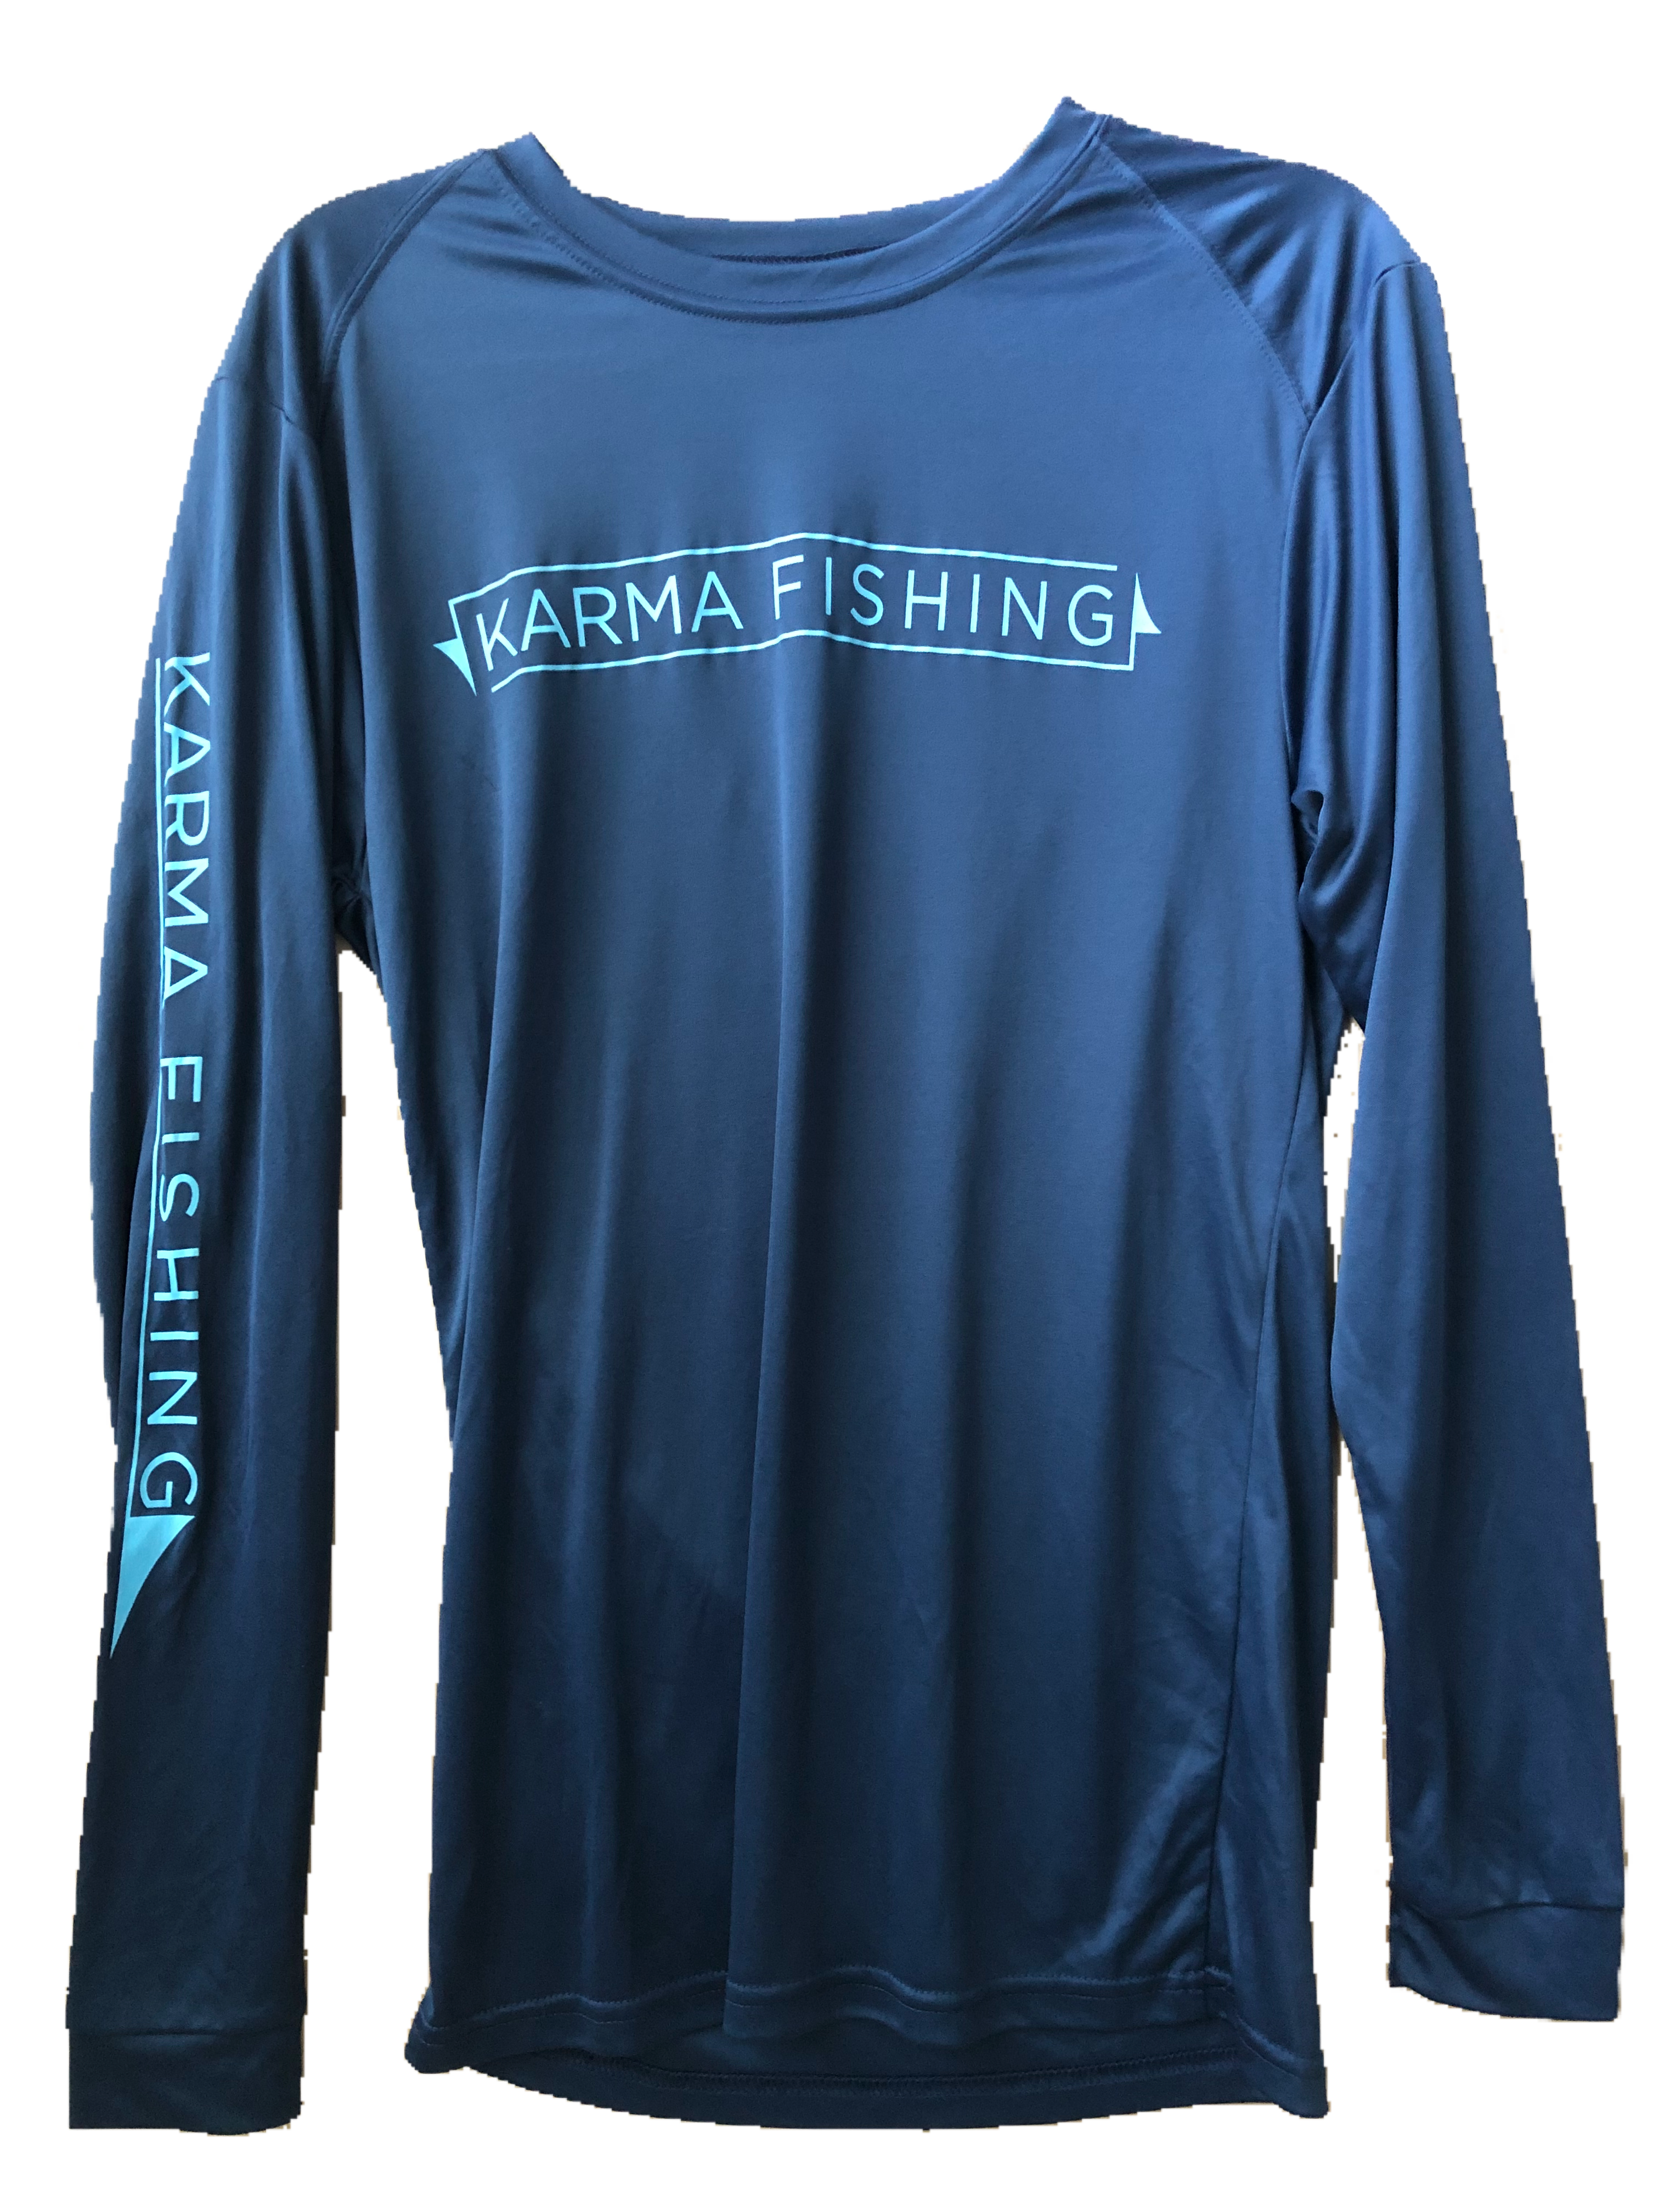 Florida Mahi UPF Shirt from Karma Fishing